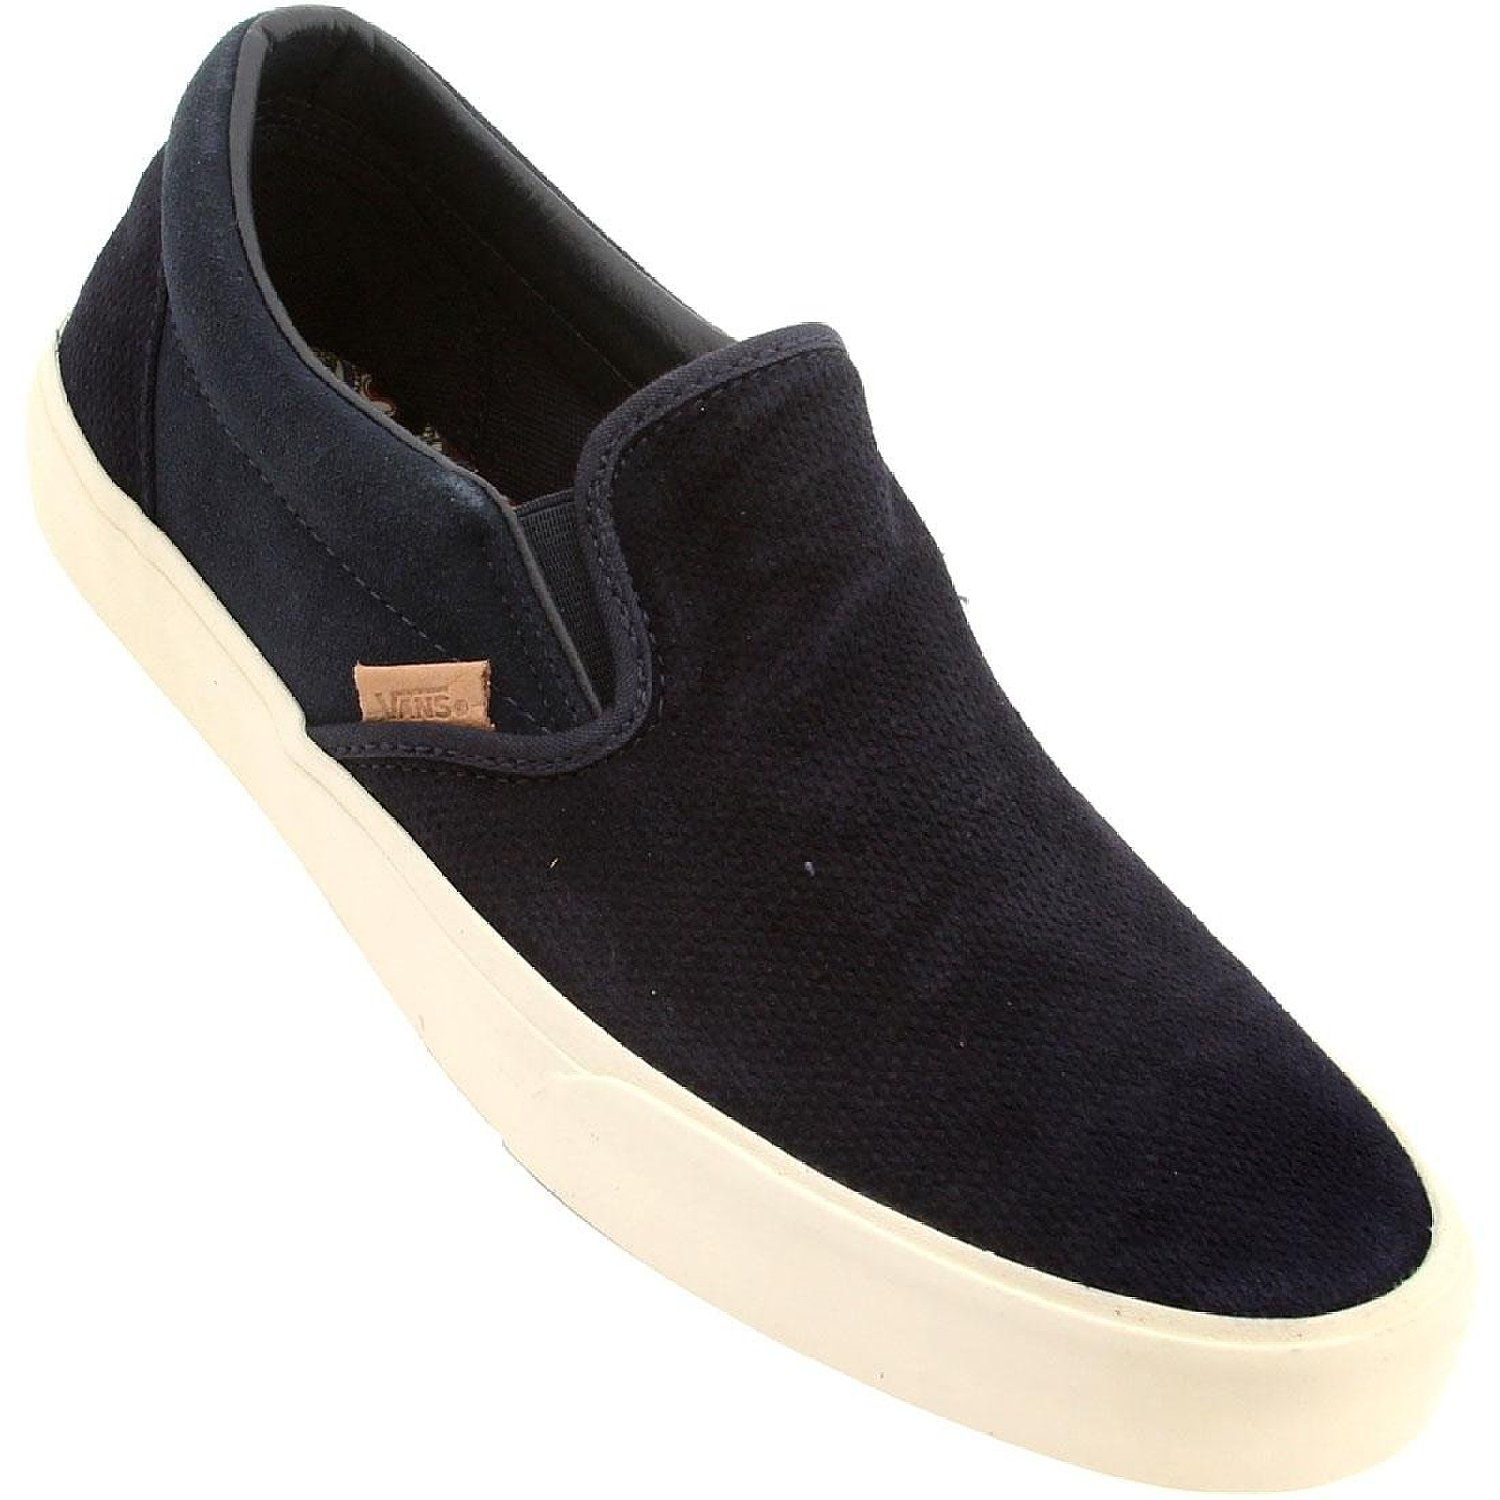 8fbb7420b1 Vans Classic California Knit Suede Slip-On Men s Sneaker